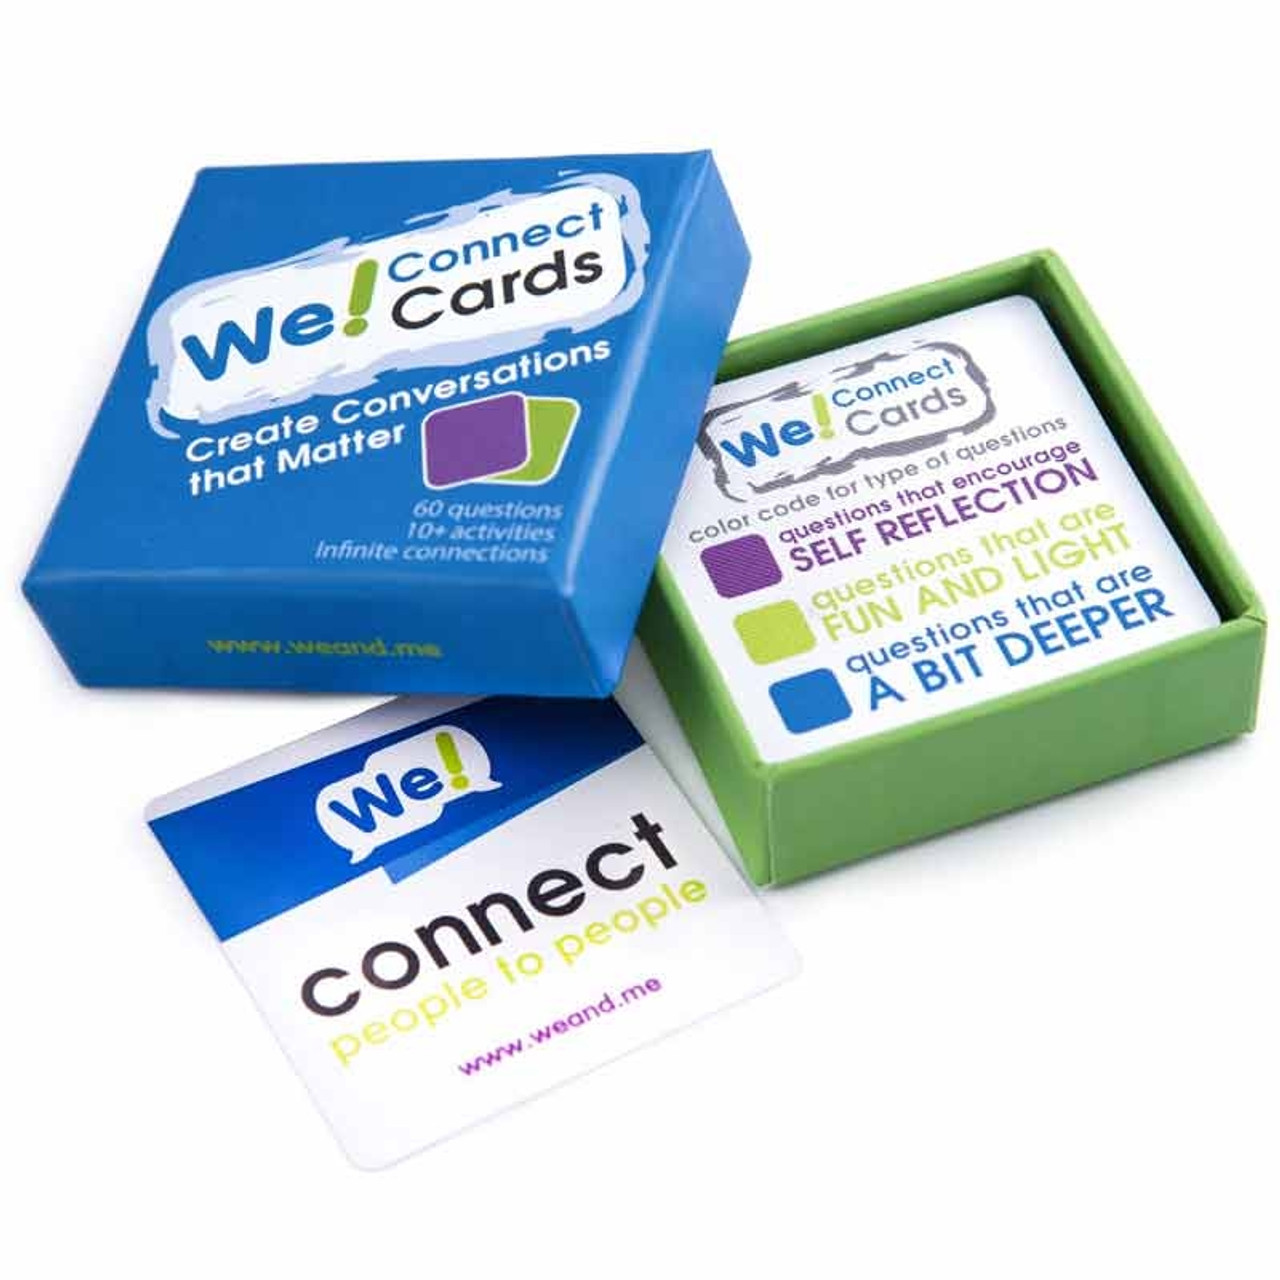 We Connect Cards; in box